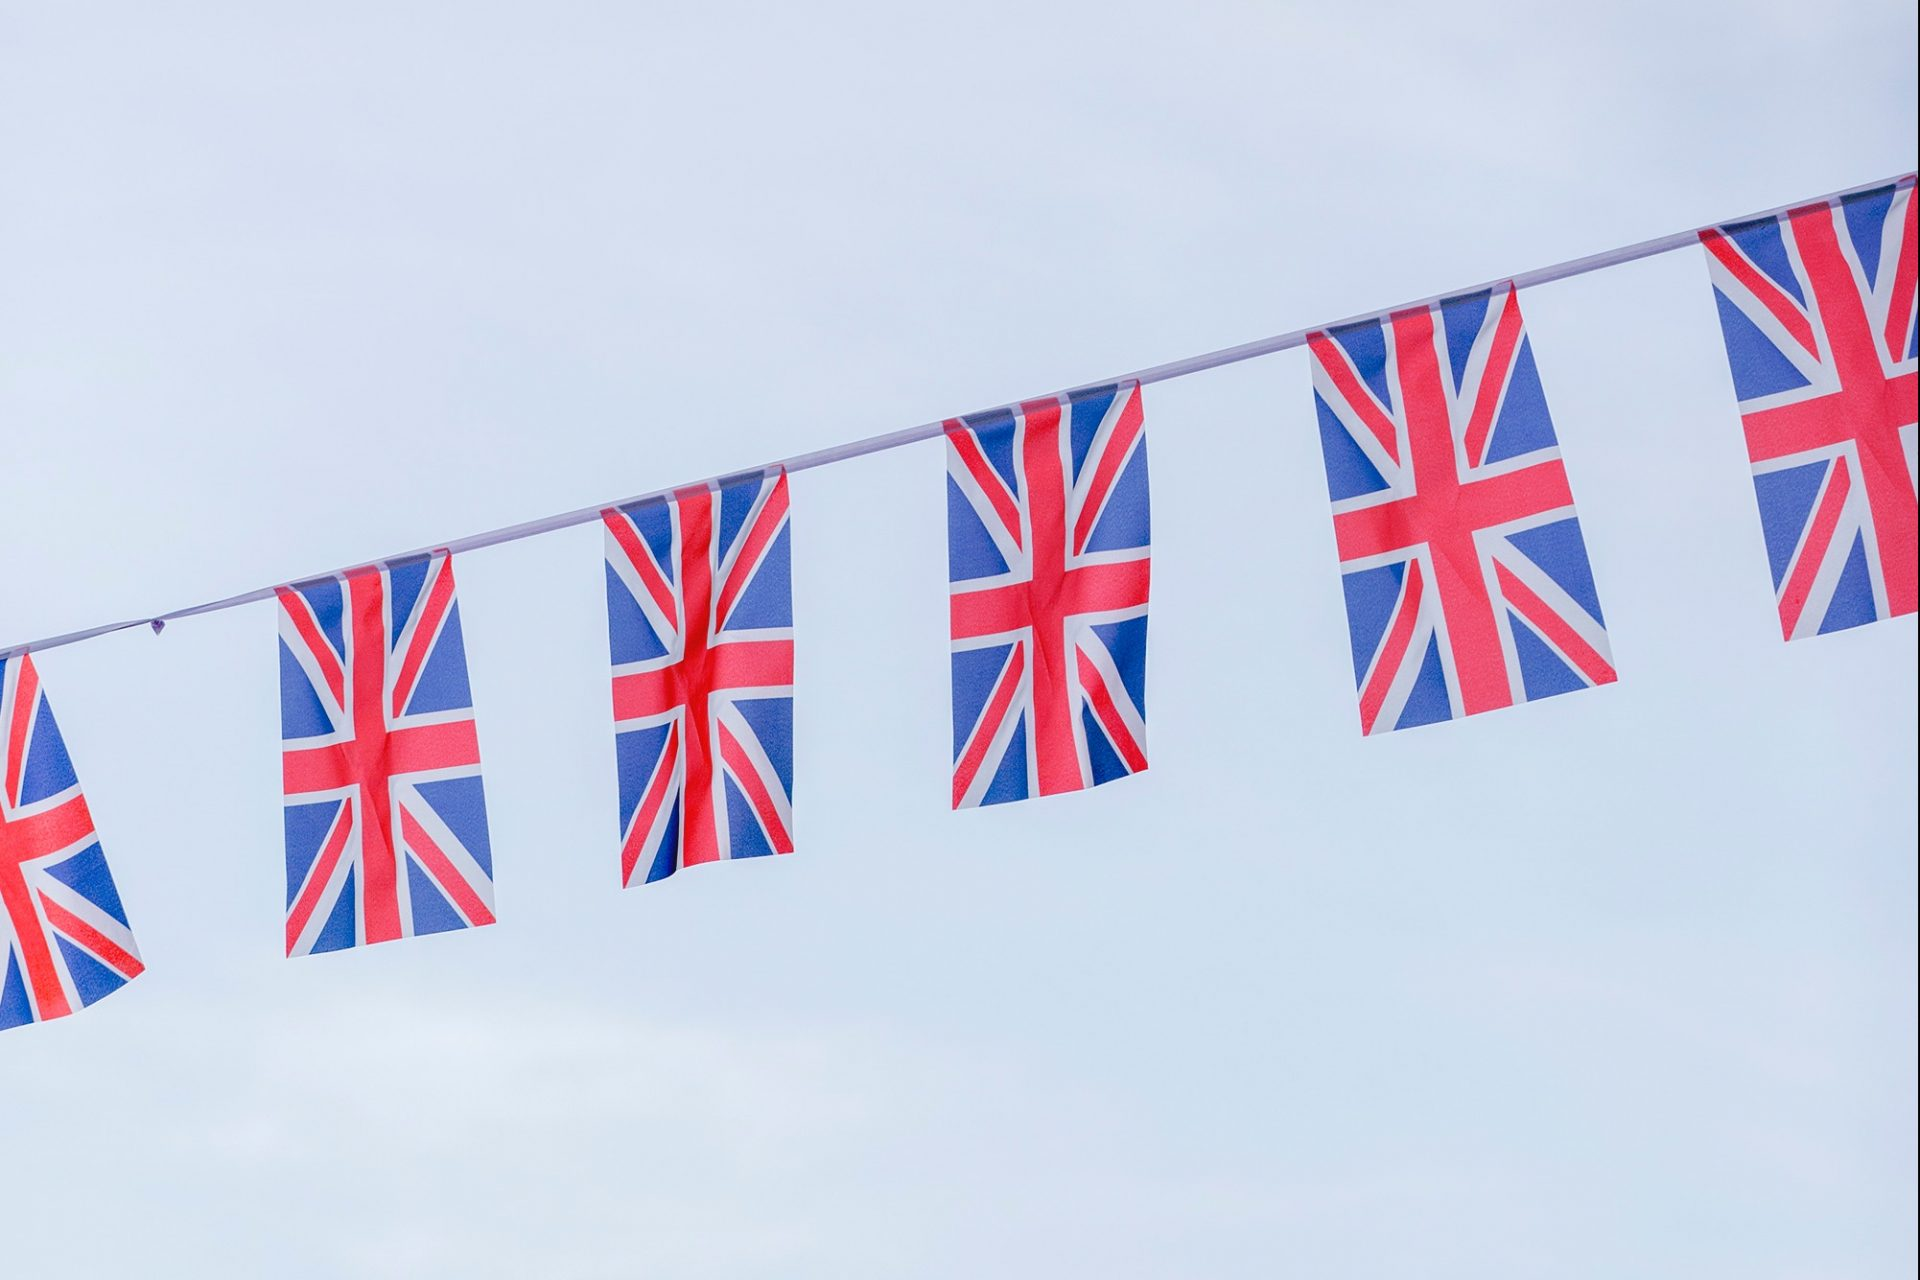 A line of Union Jack flags